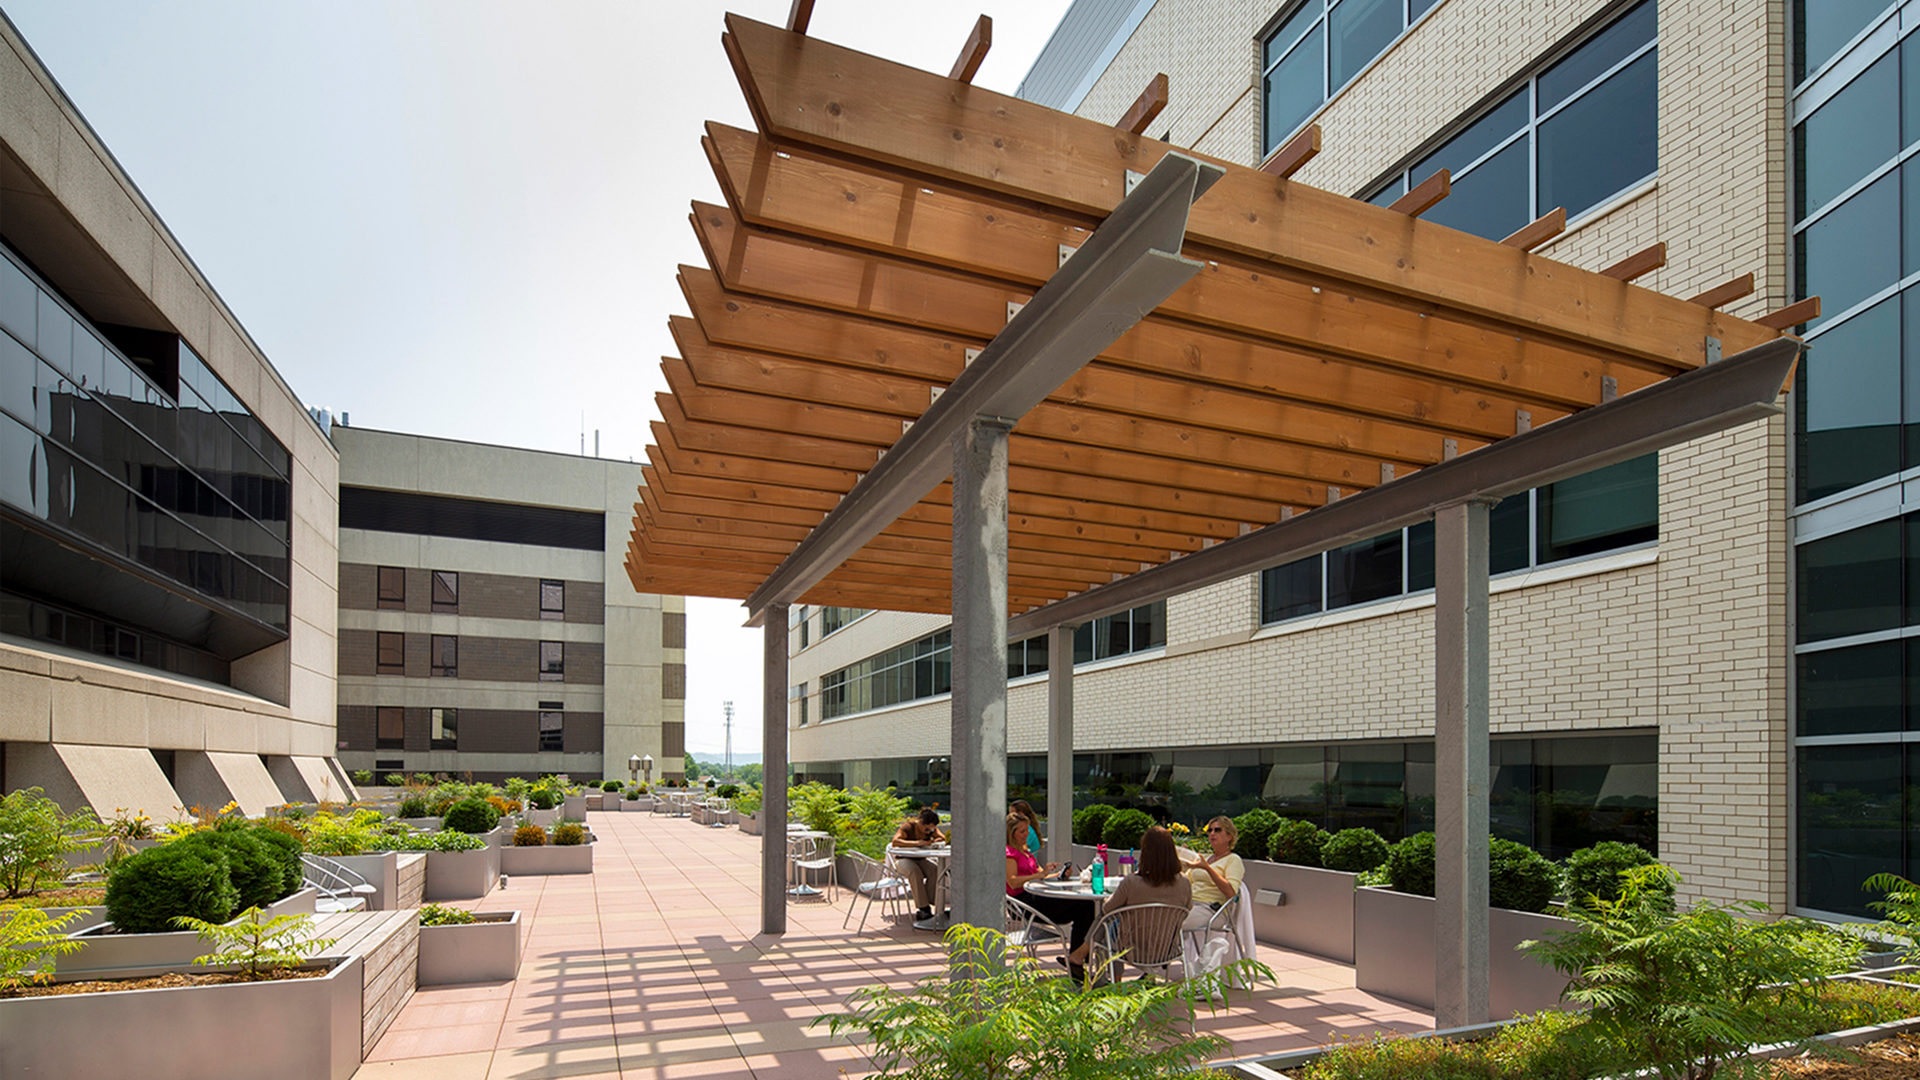 Gundersen Healthcare System Hospital Exterior Patio Seating Green Space